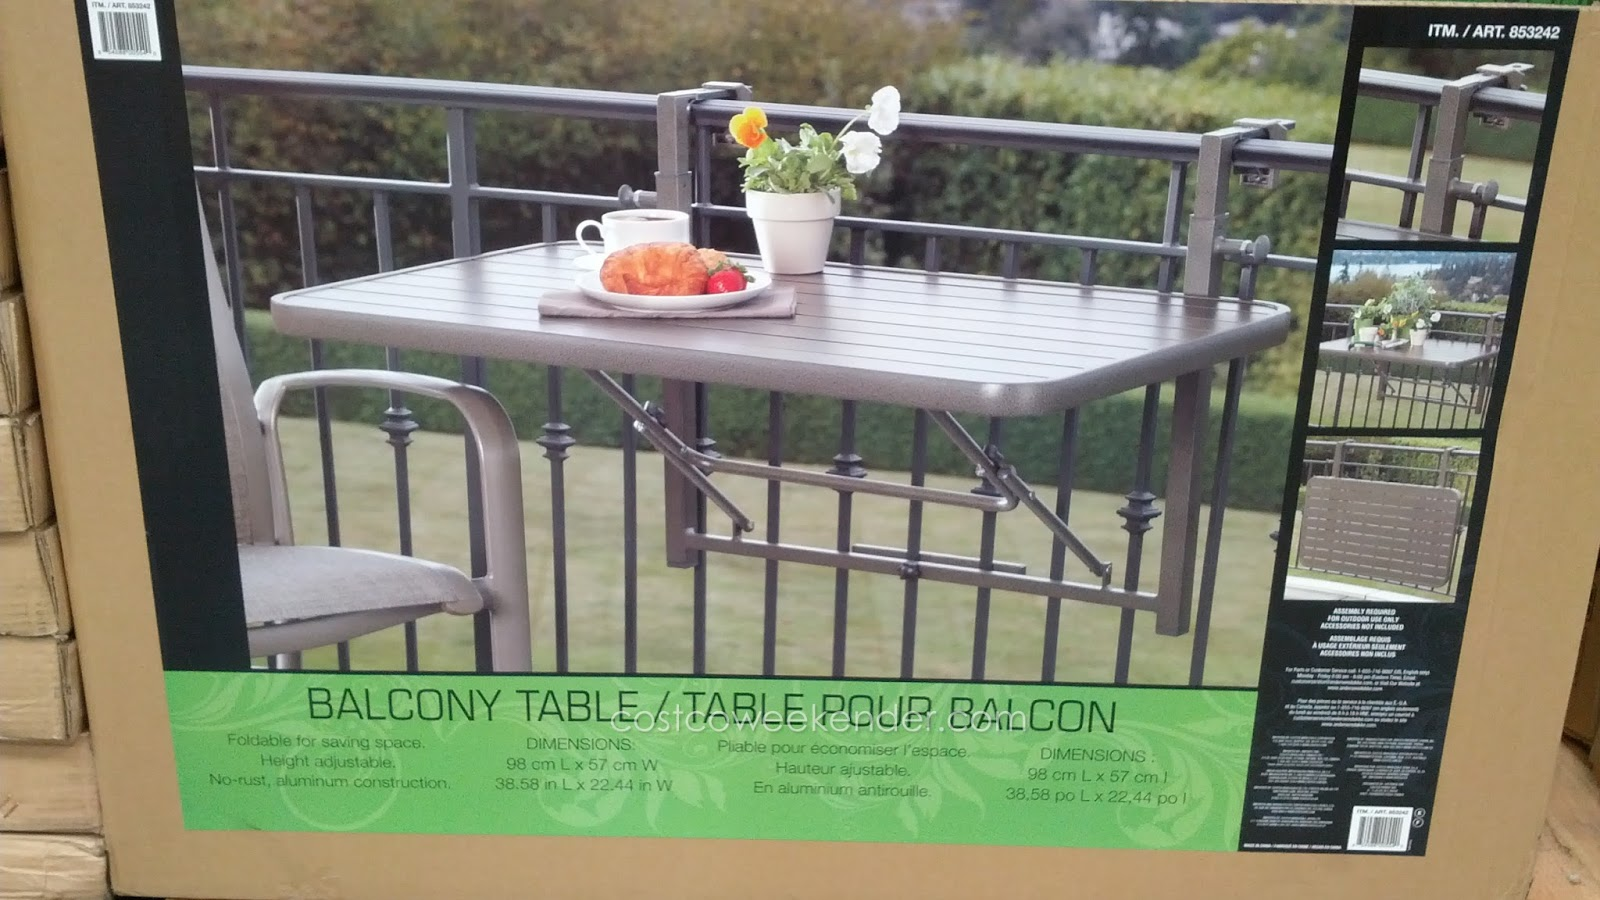 Andersen stokke dante folding space balcony table - Table suspendue balcon ...